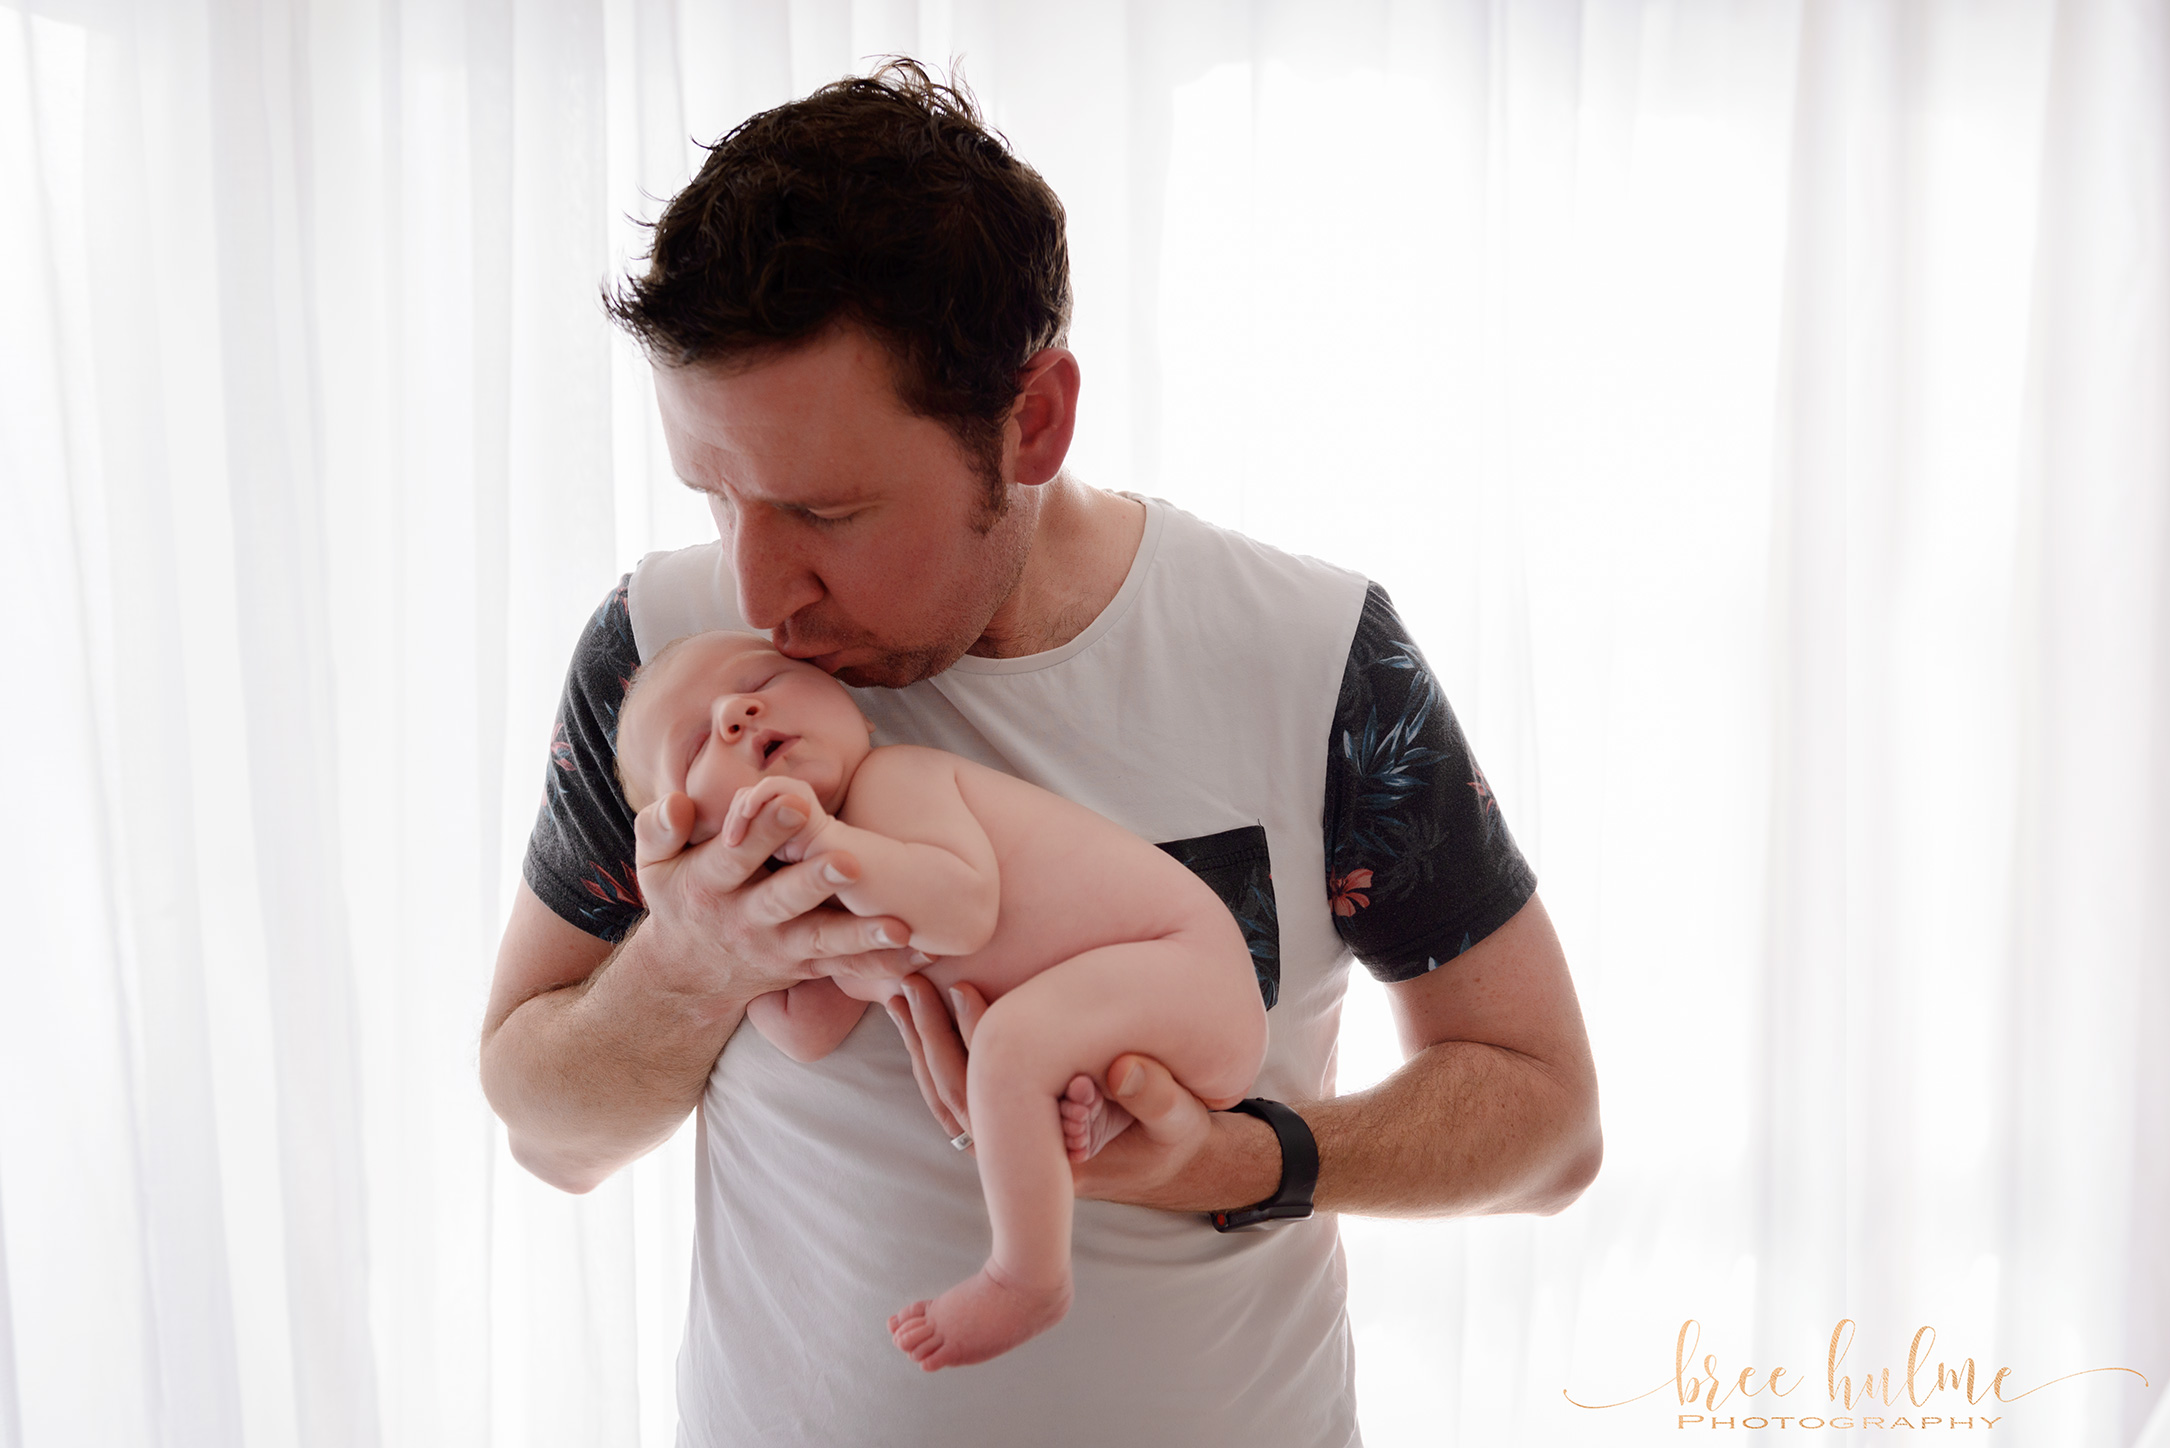 Stunning newborn portraits by Bree Hulme photography on Sydney's Northern Beaches and North Shore - Happy Father's Day